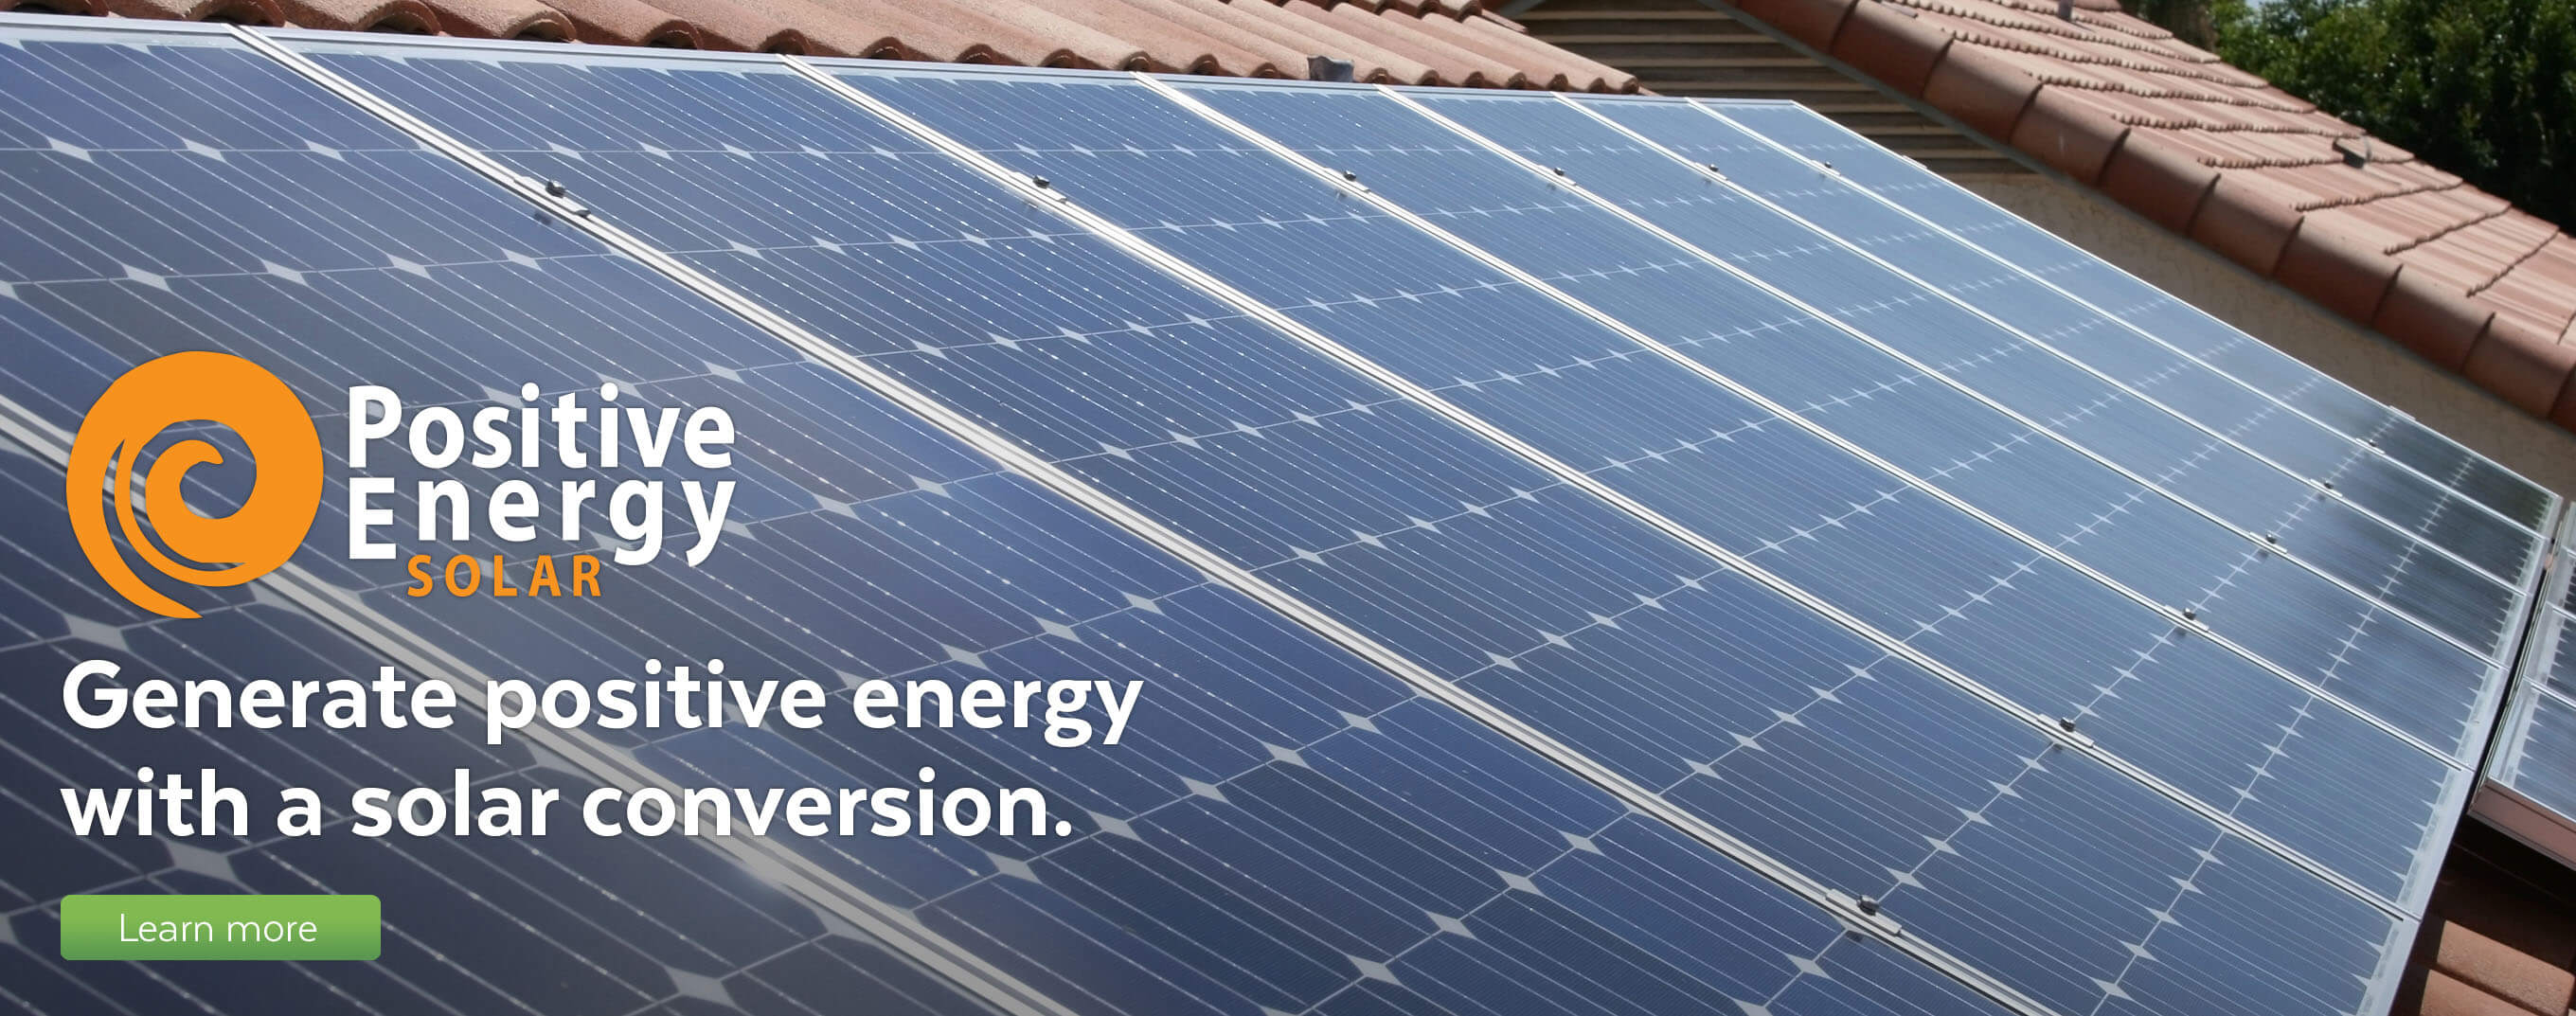 Generate positive energy with a solar conversion.